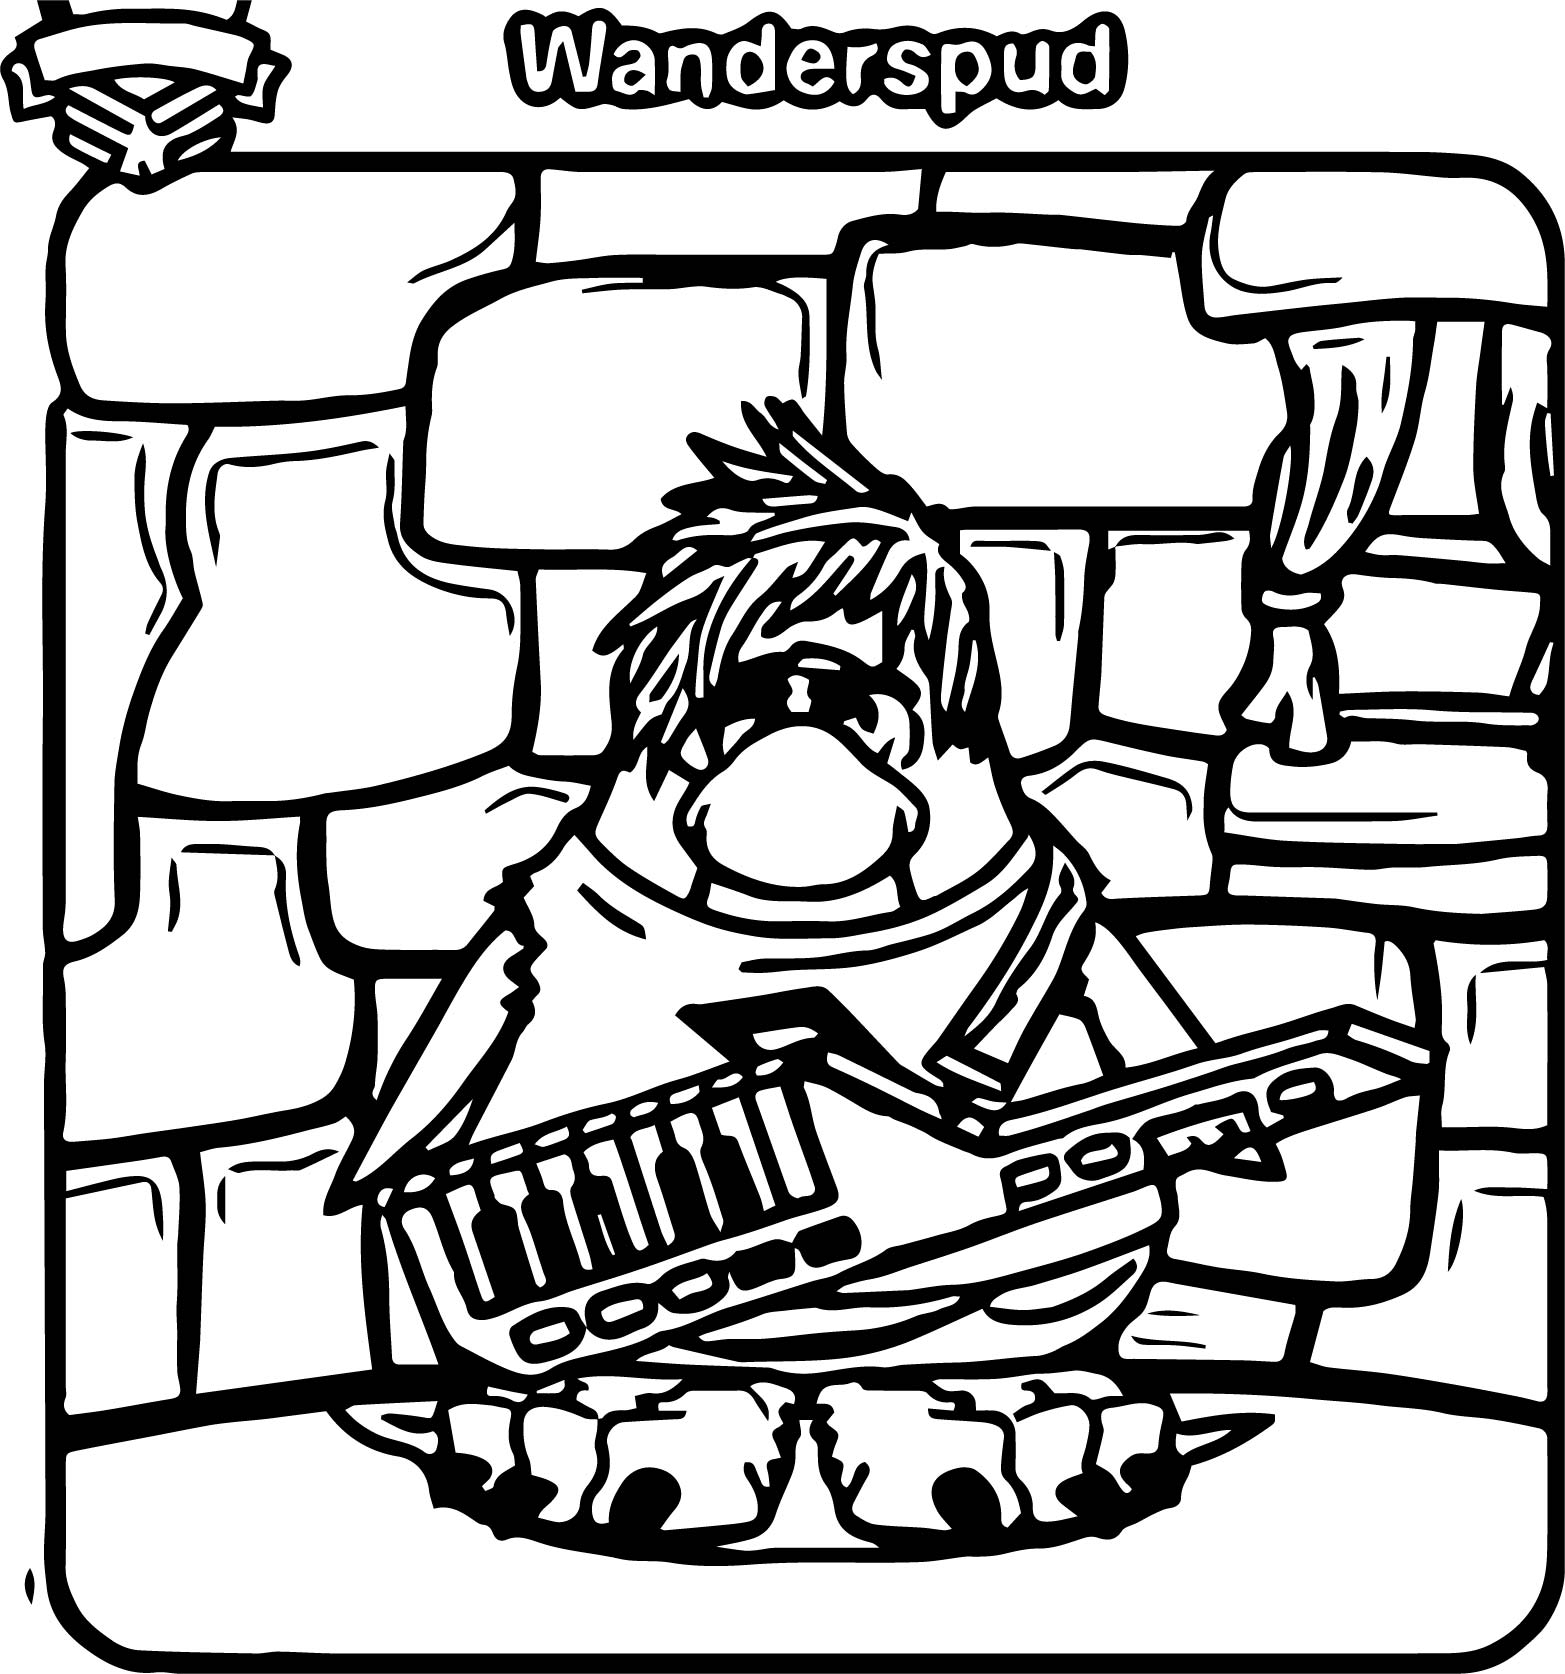 Club Penguin Wanderspud Coloring Page